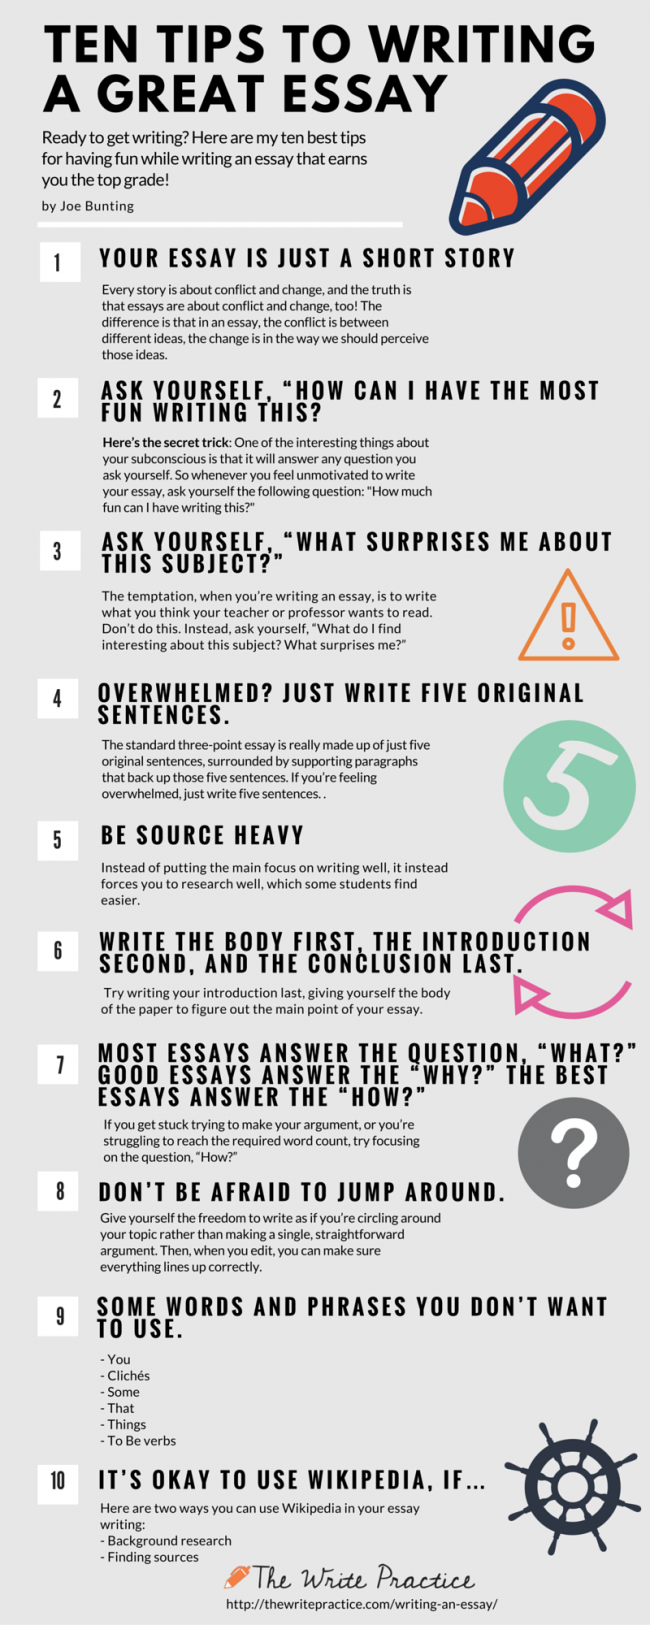 001 Tips For Writing An Essay1 650x1625 On Essay Striking Introduction About Yourself Essays Faster Full